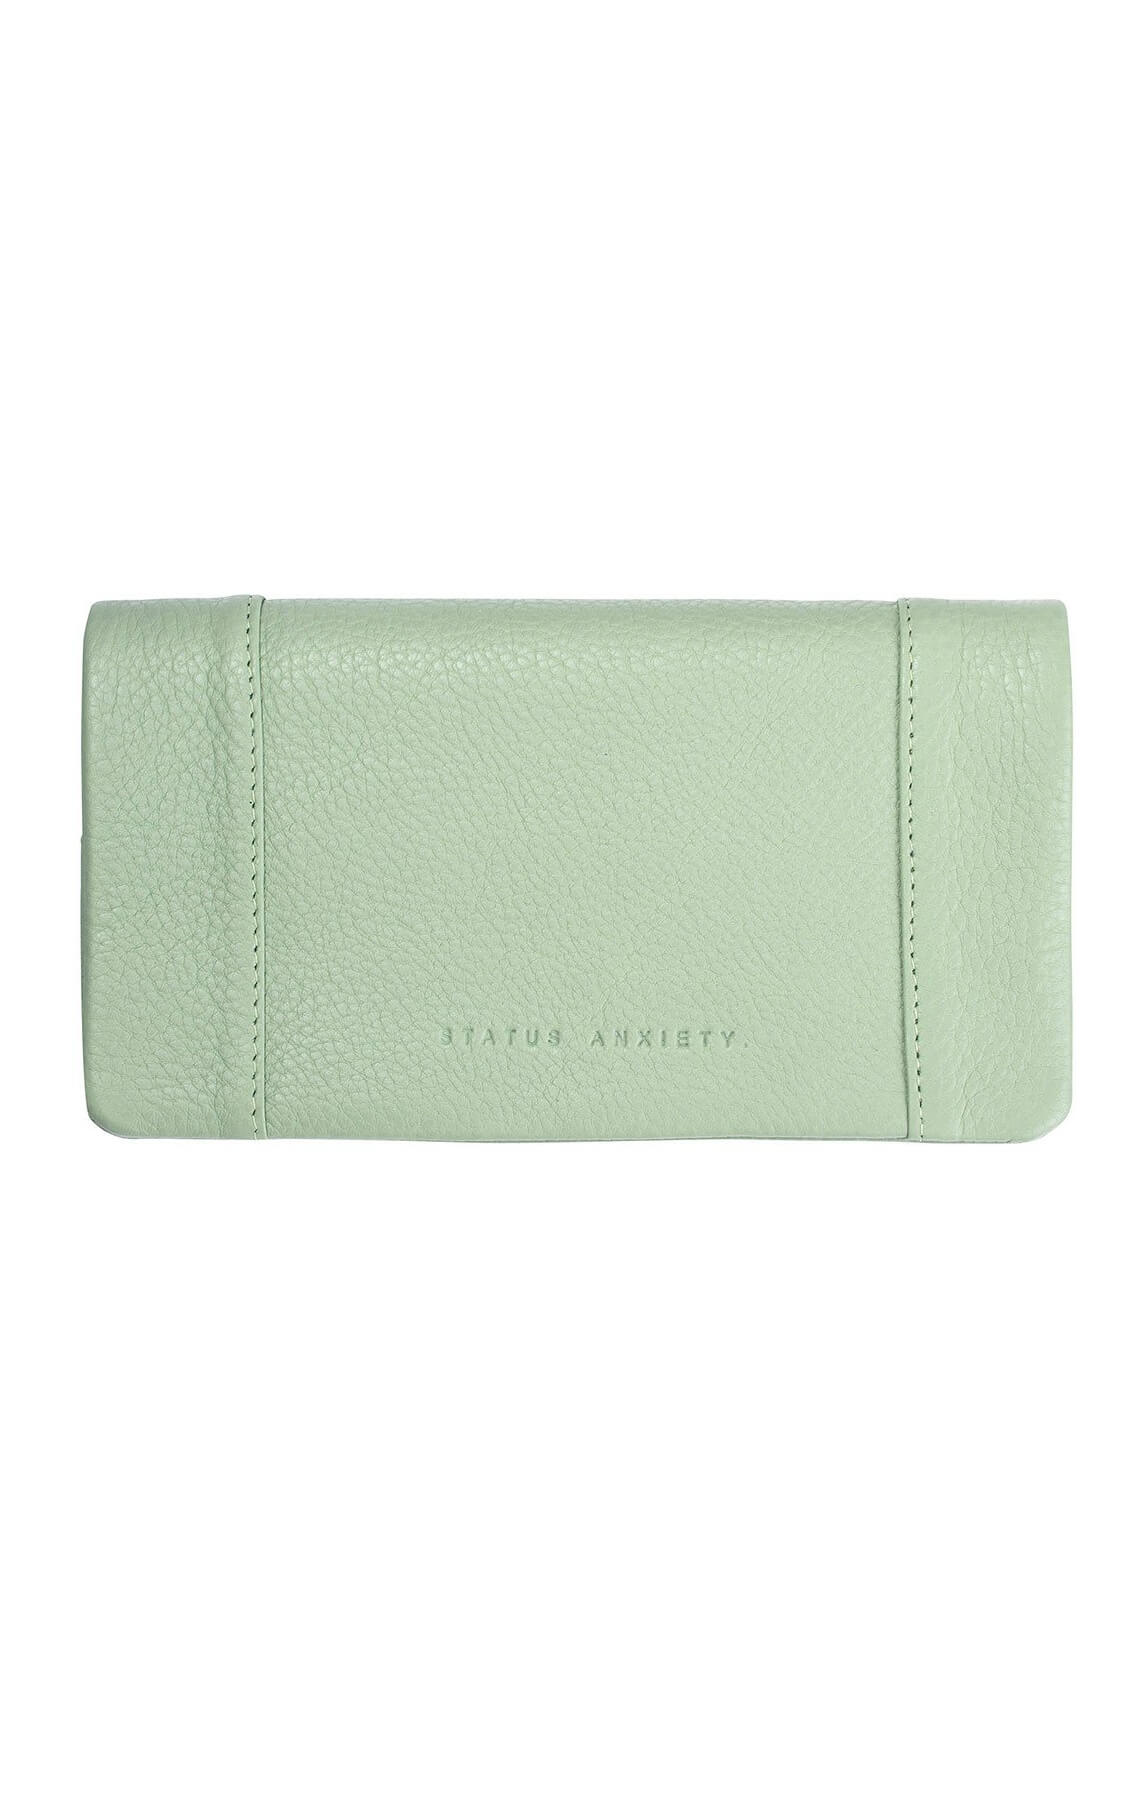 status anxiety some type of love wallet mint